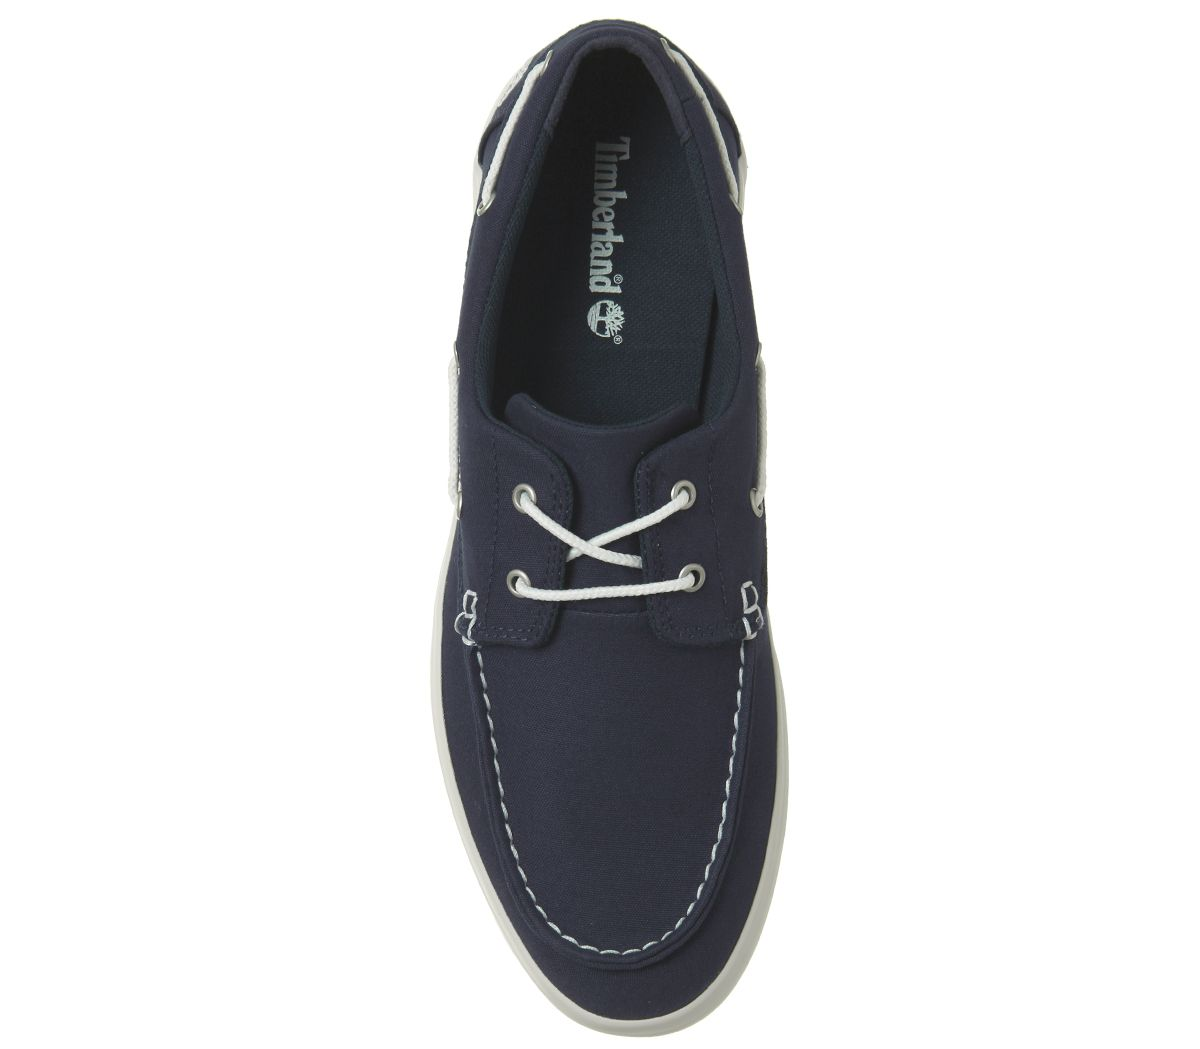 ee6d3f50ac27c4 Mens Timberland Newport Bay 2 Eye Boat Oxfords Navy Casual Shoes | eBay